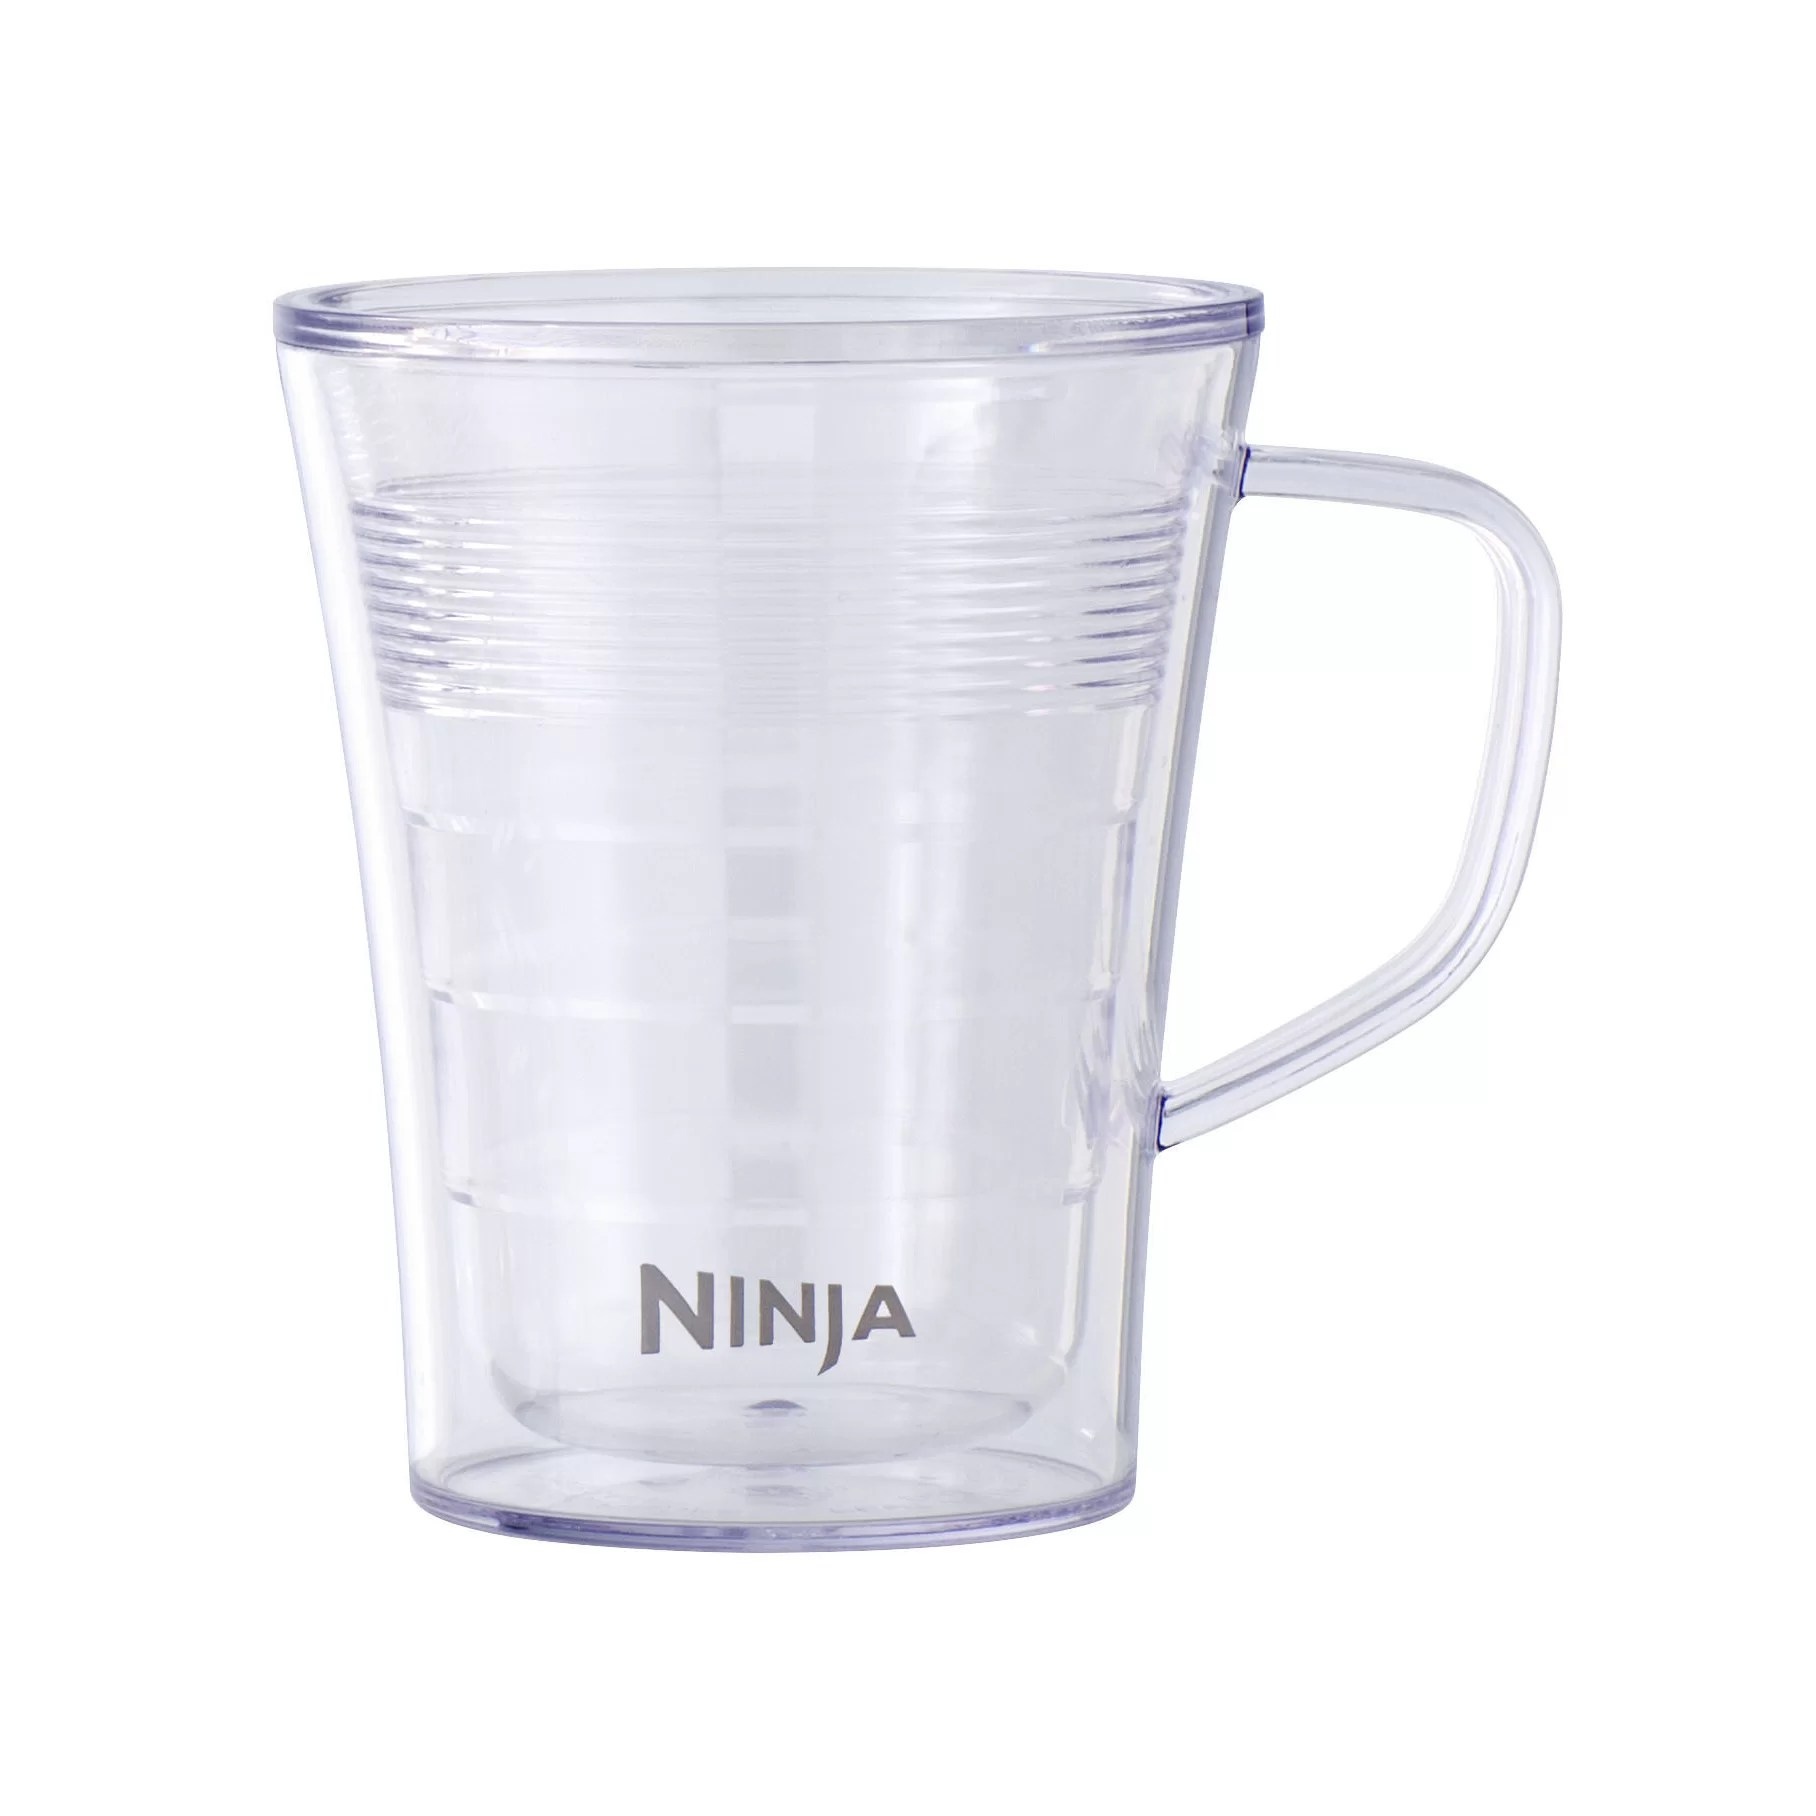 Ninja Mugs Ninja 12 Oz Insulated Coffee Mug And Reviews Wayfair